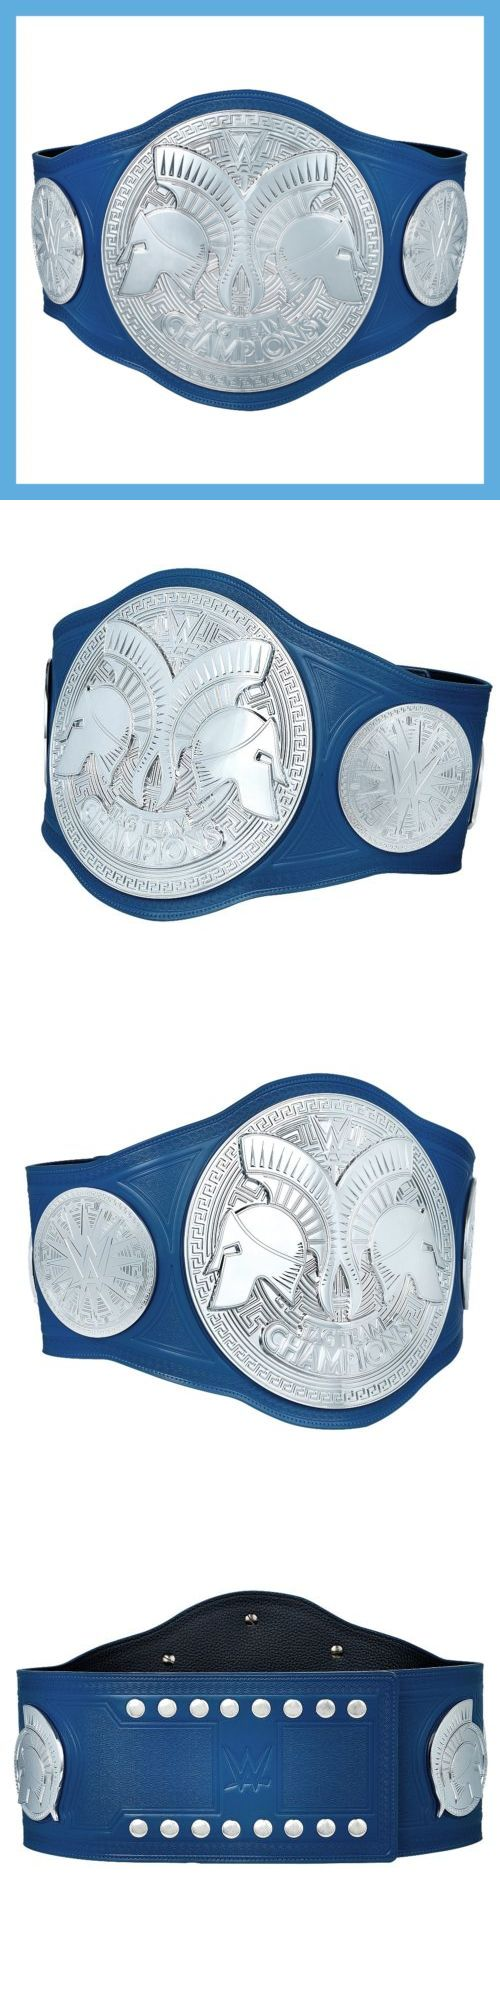 Wrestling 2902: Wwe Tag Team Championship Commemorative Professional Title Belt, Brand New (U.S) -> BUY IT NOW ONLY: $205 on eBay!